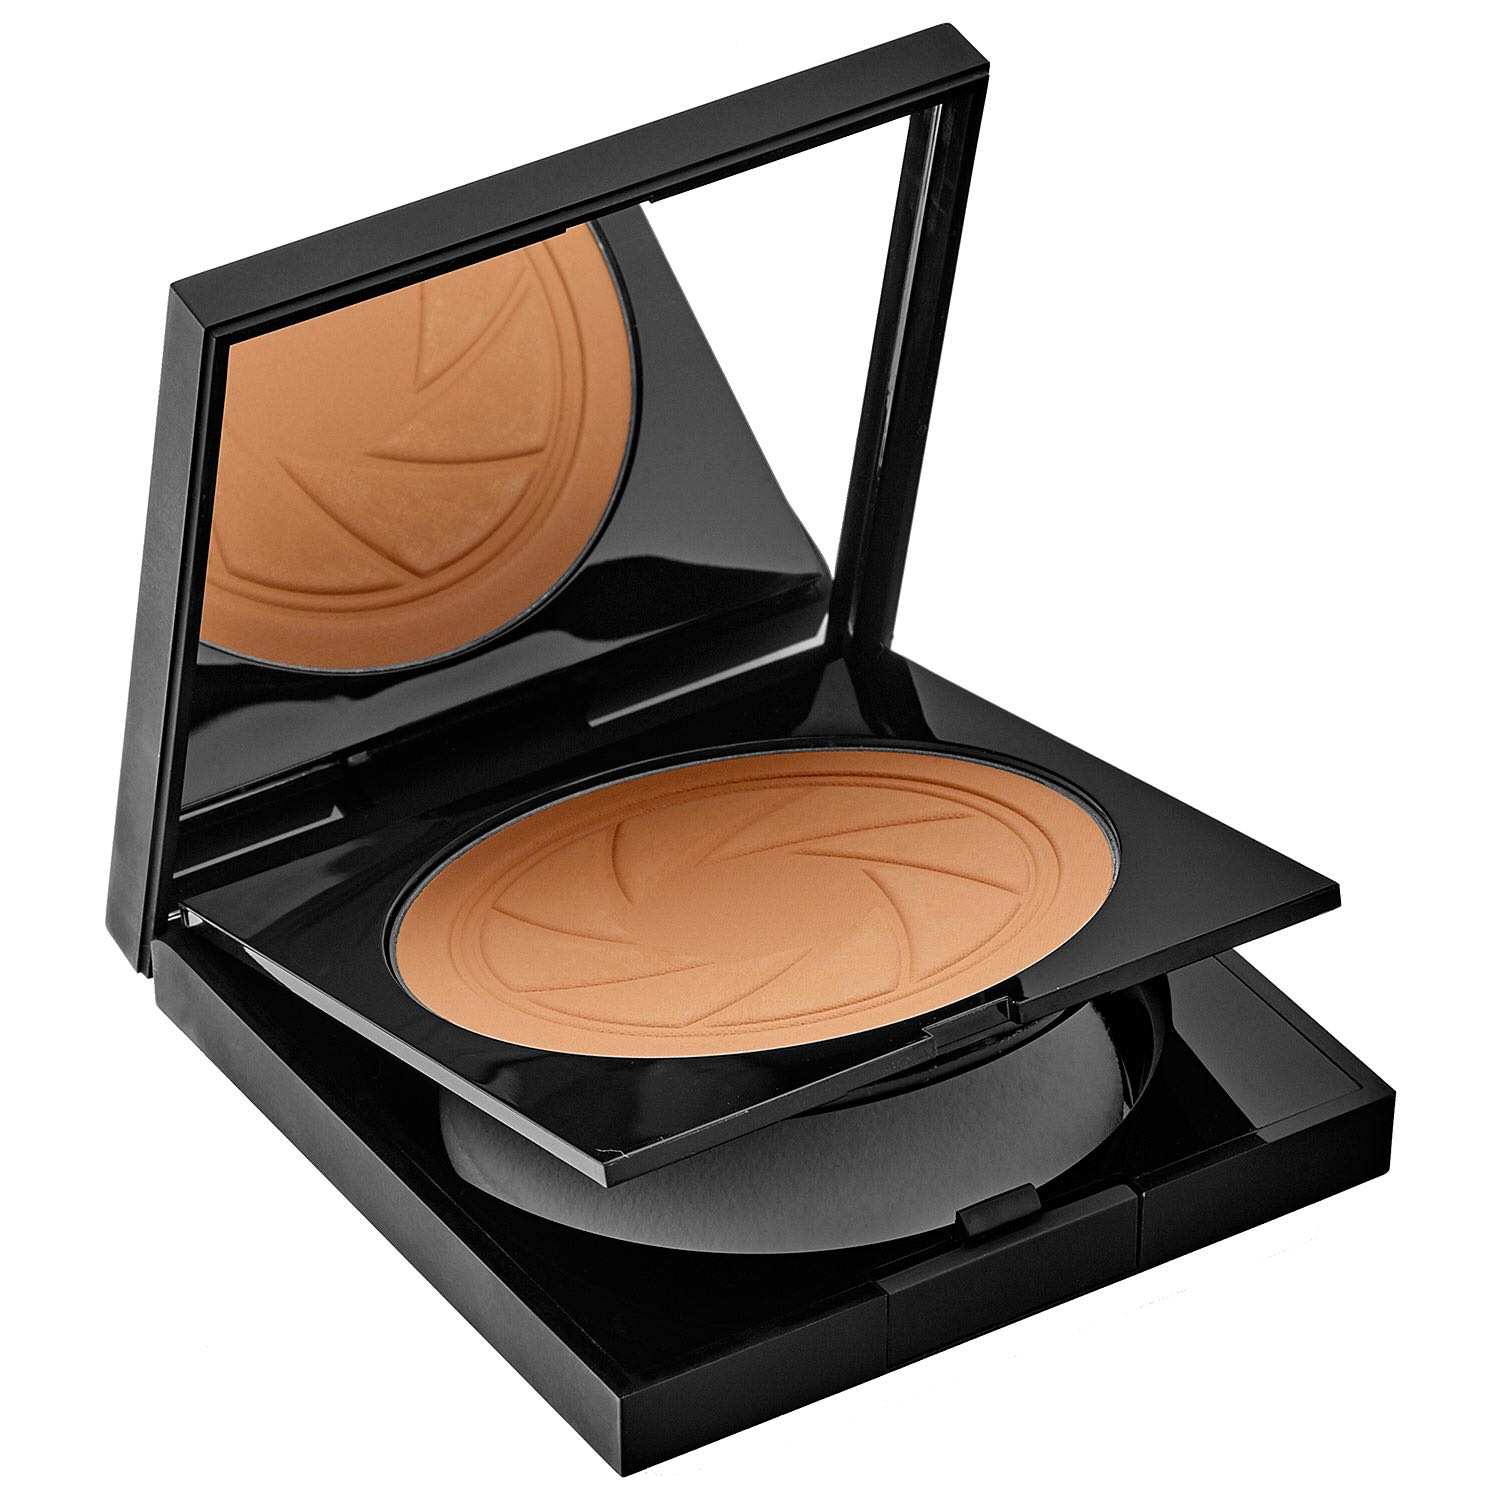 SMASHBOX POWDER FOUNDATION